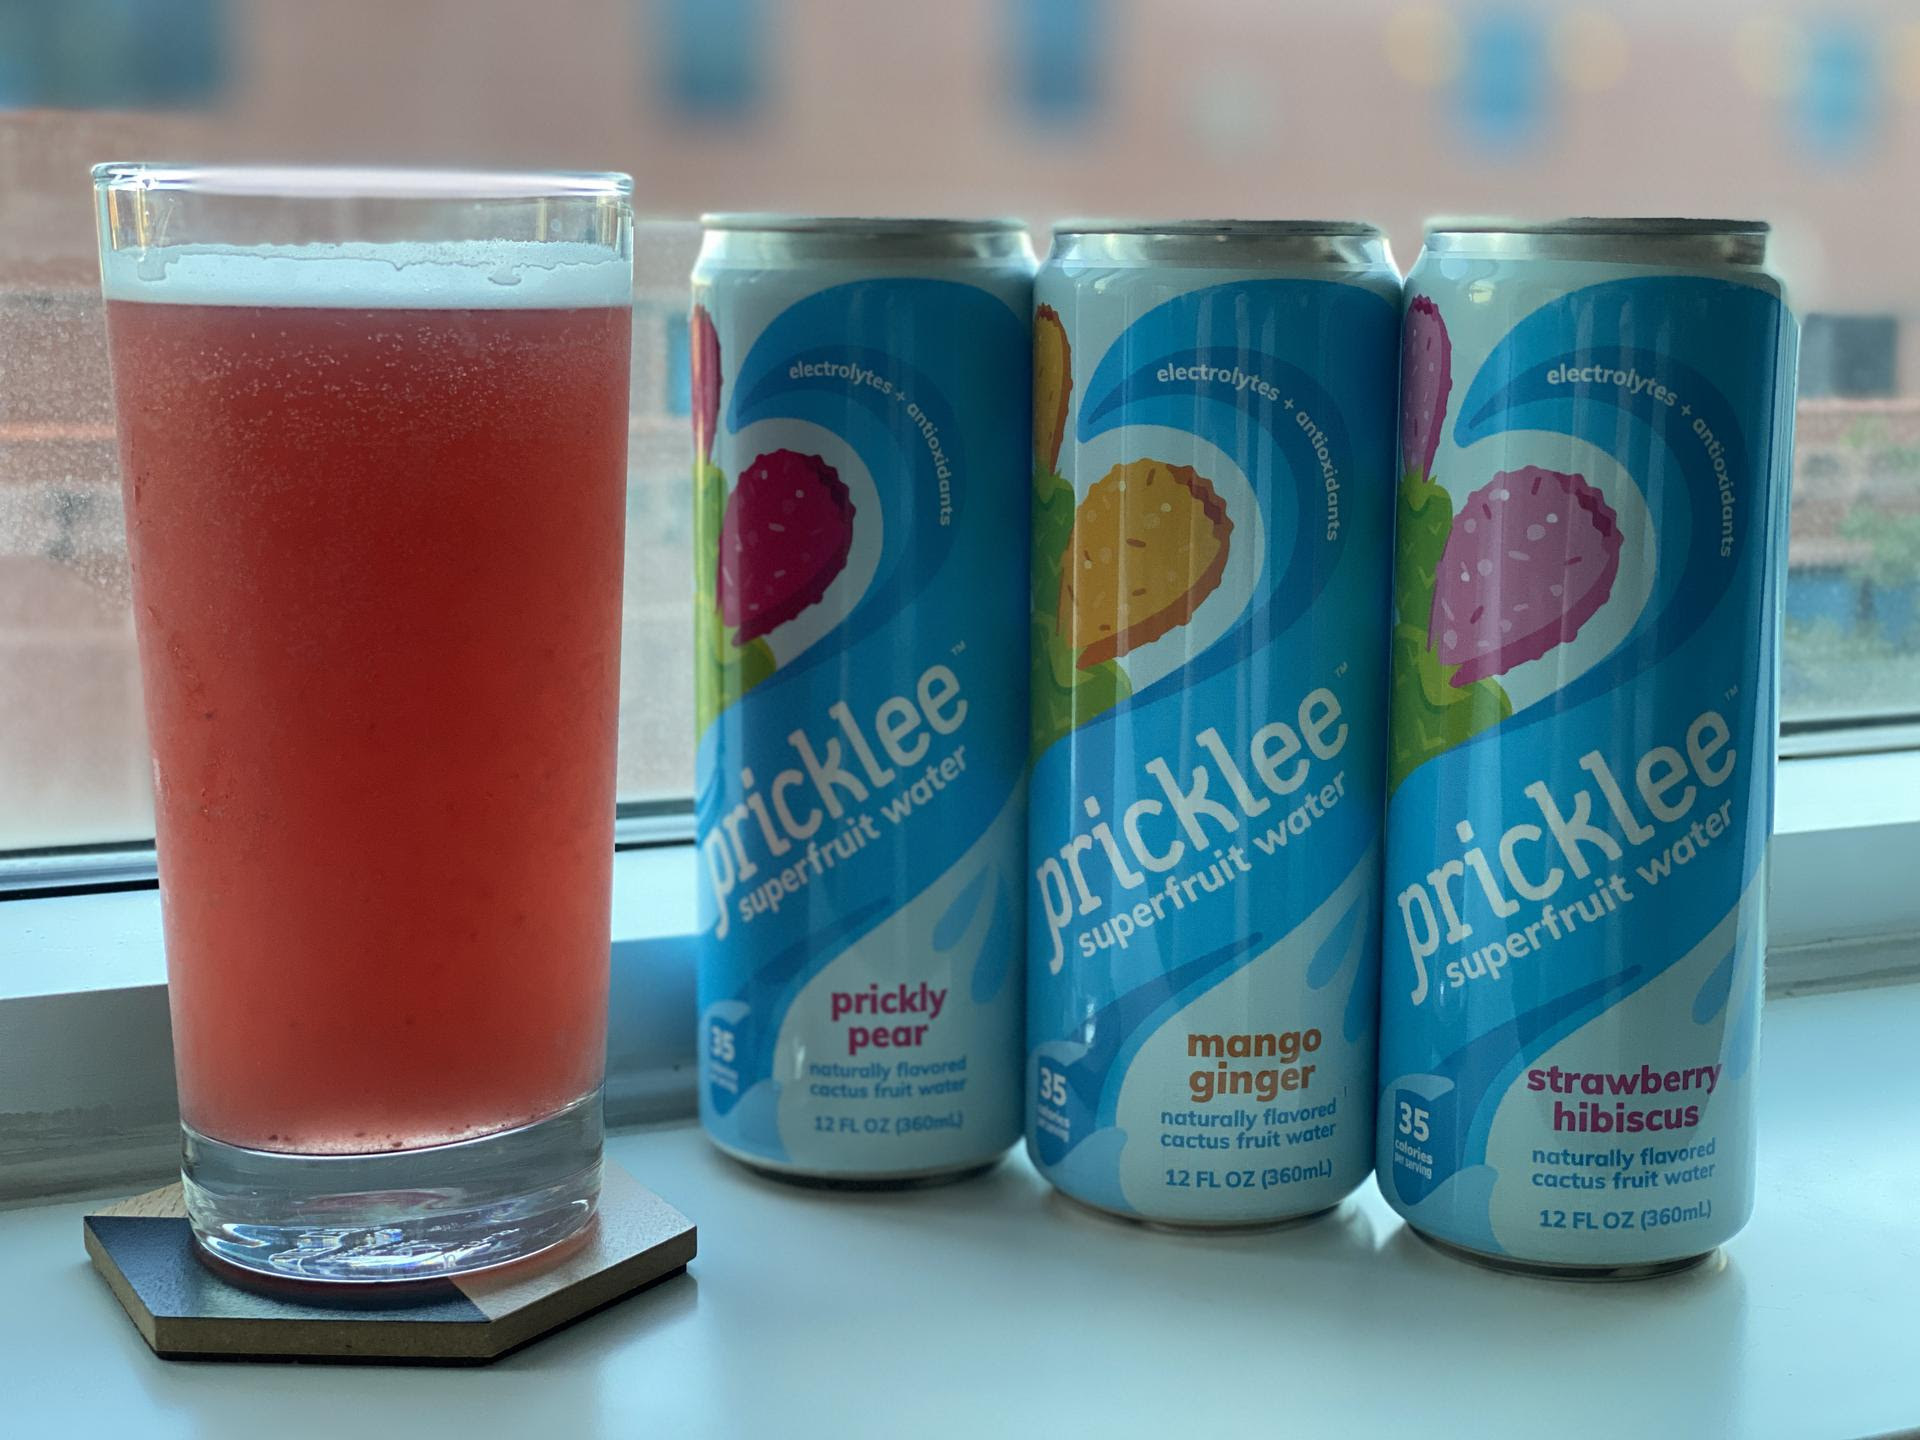 cans of pricklee fruit water next to one that's a dark pink color poured into a glass